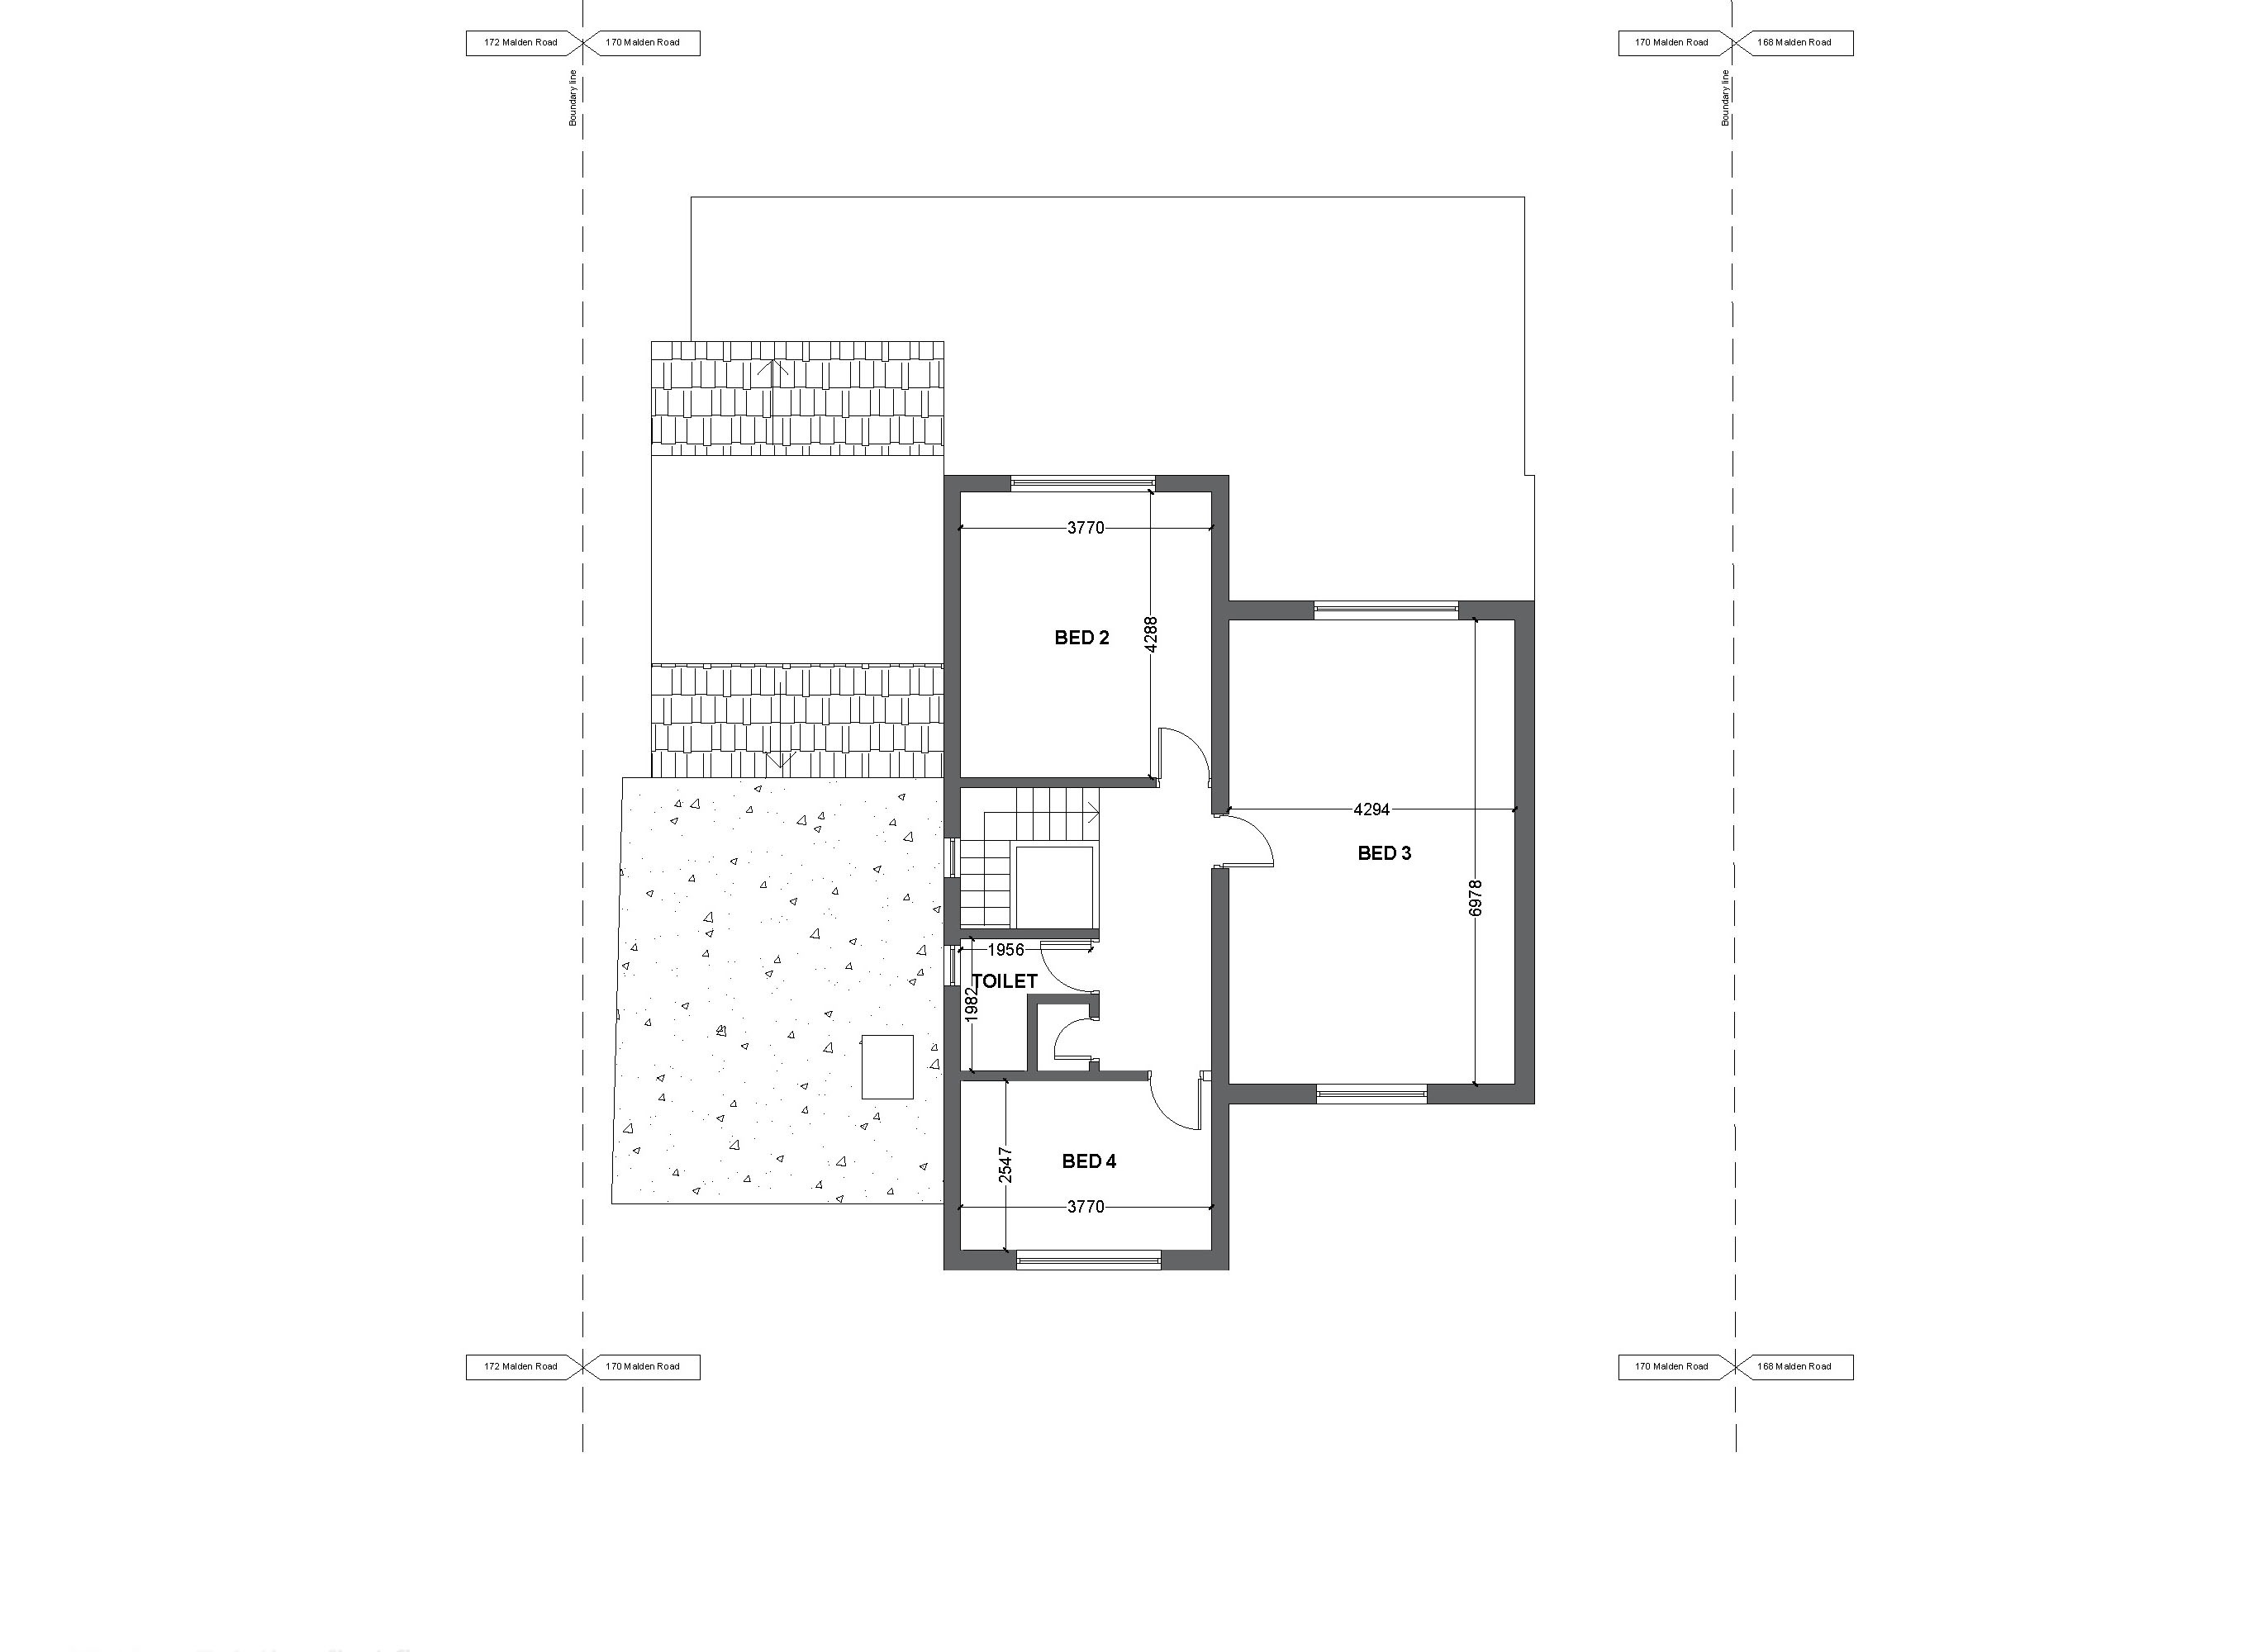 2 existing first floor